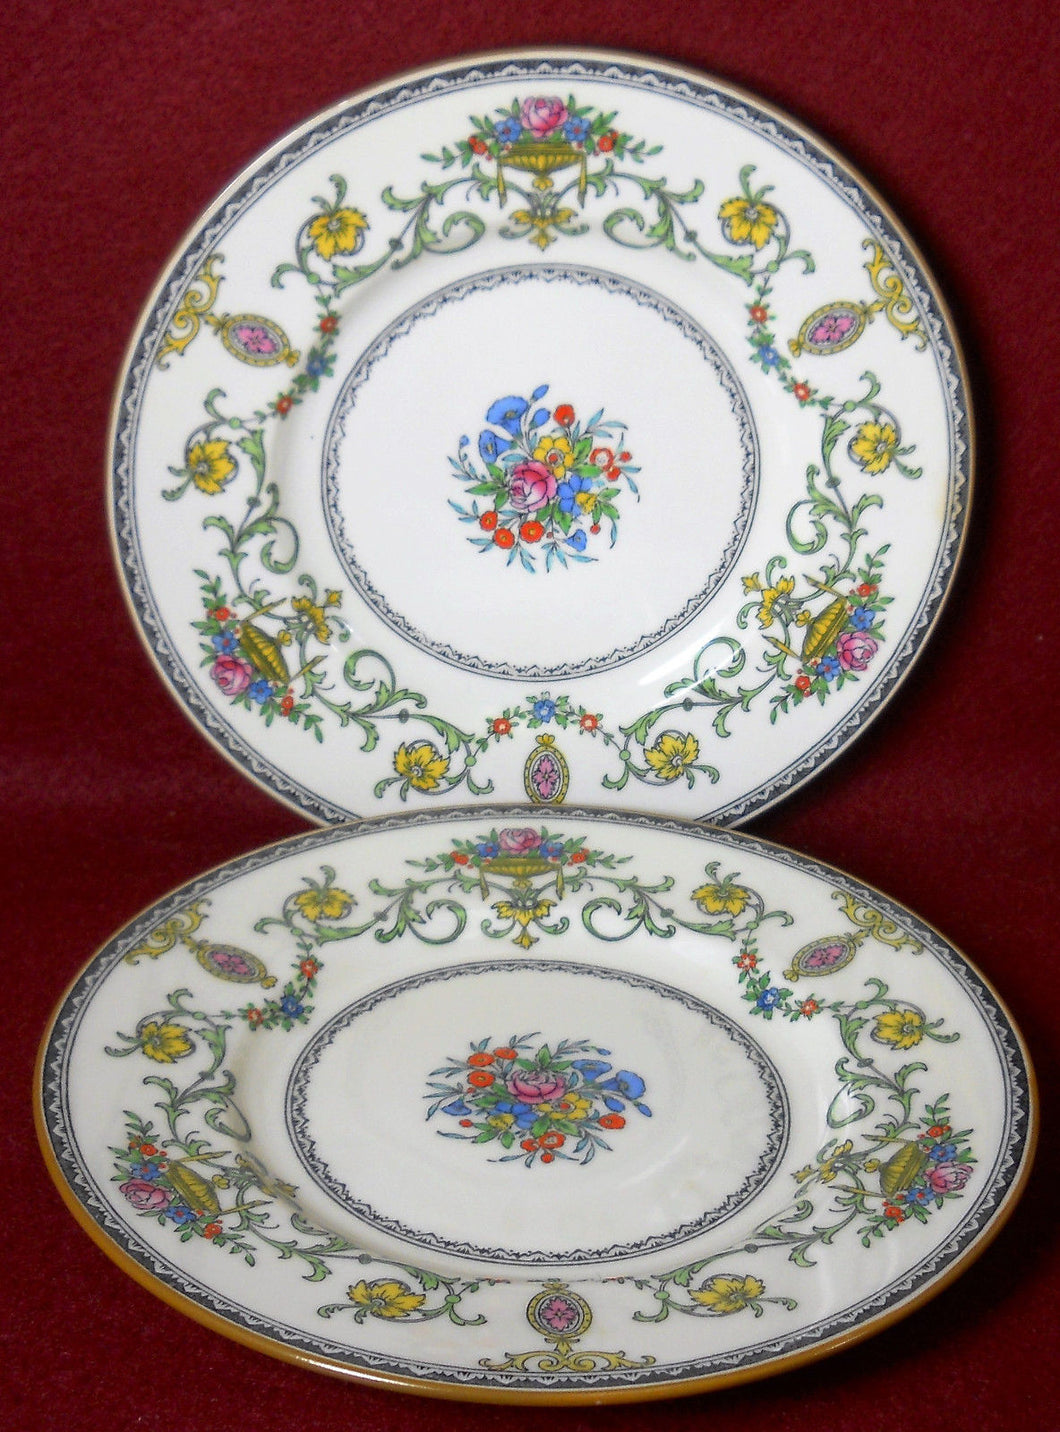 MINTON china TALBOT pattern B1113 Bread & Butter Plate 6-1/4